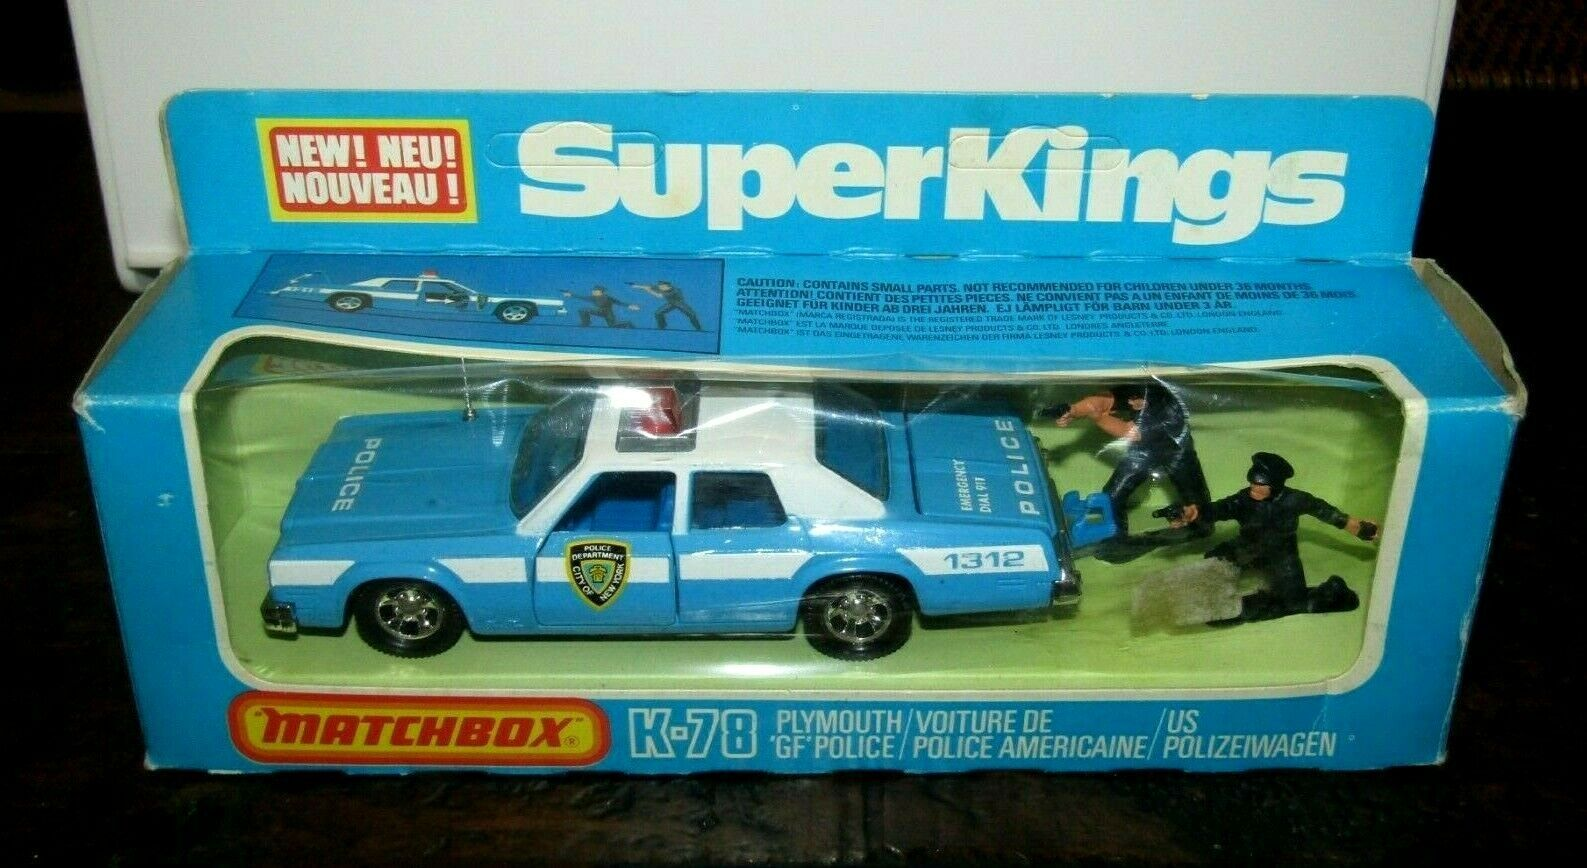 MATCHBOX  K 78  POLICE     SUPER KINGS   MADE IN ENGLAND